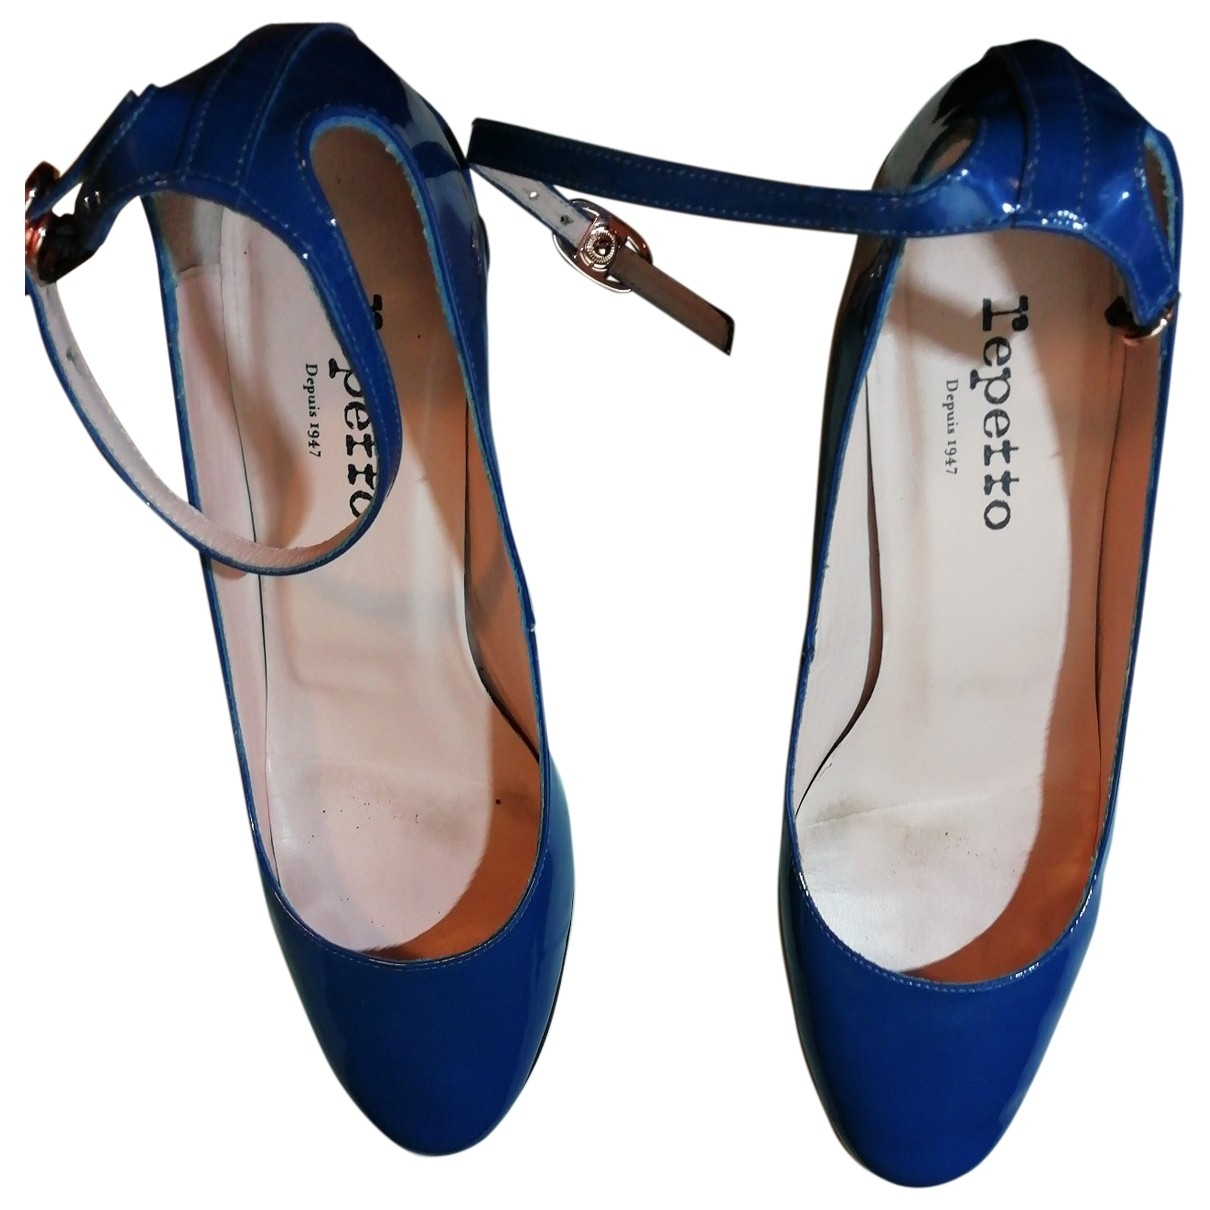 Repetto \N Blue Patent leather Heels for Women 38 EU